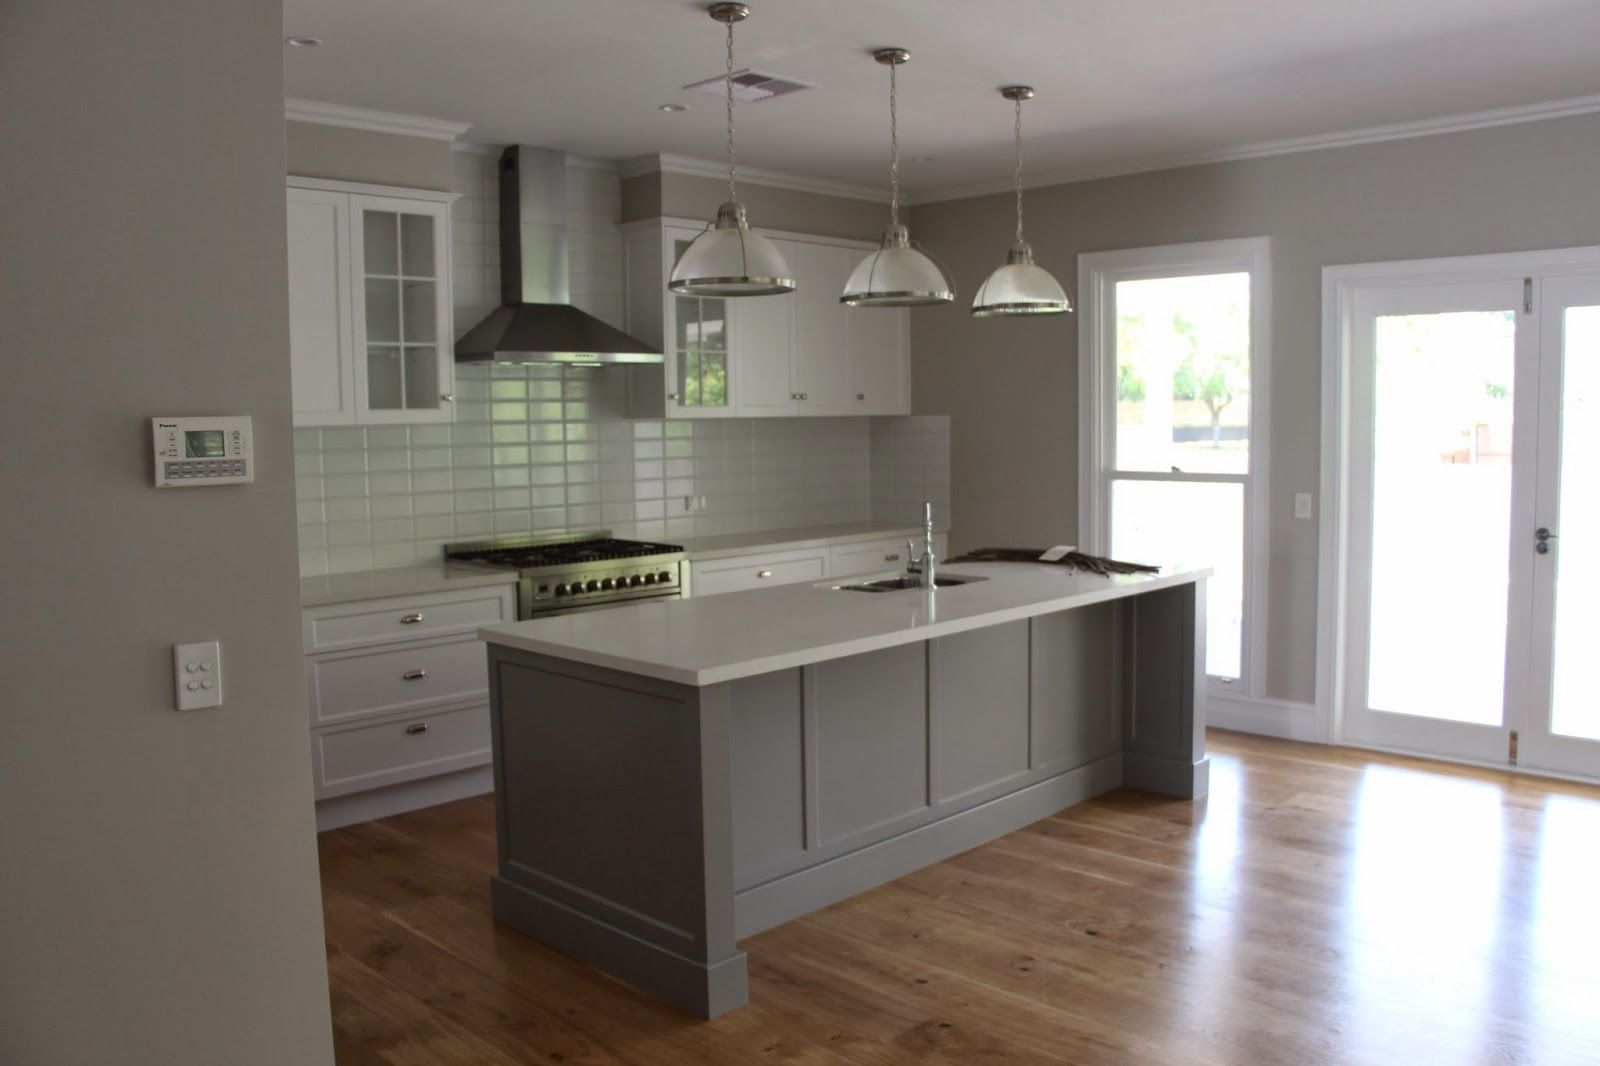 London grey caesarstone google search kitchen styles for Kitchen colors with white cabinets with australia wall art